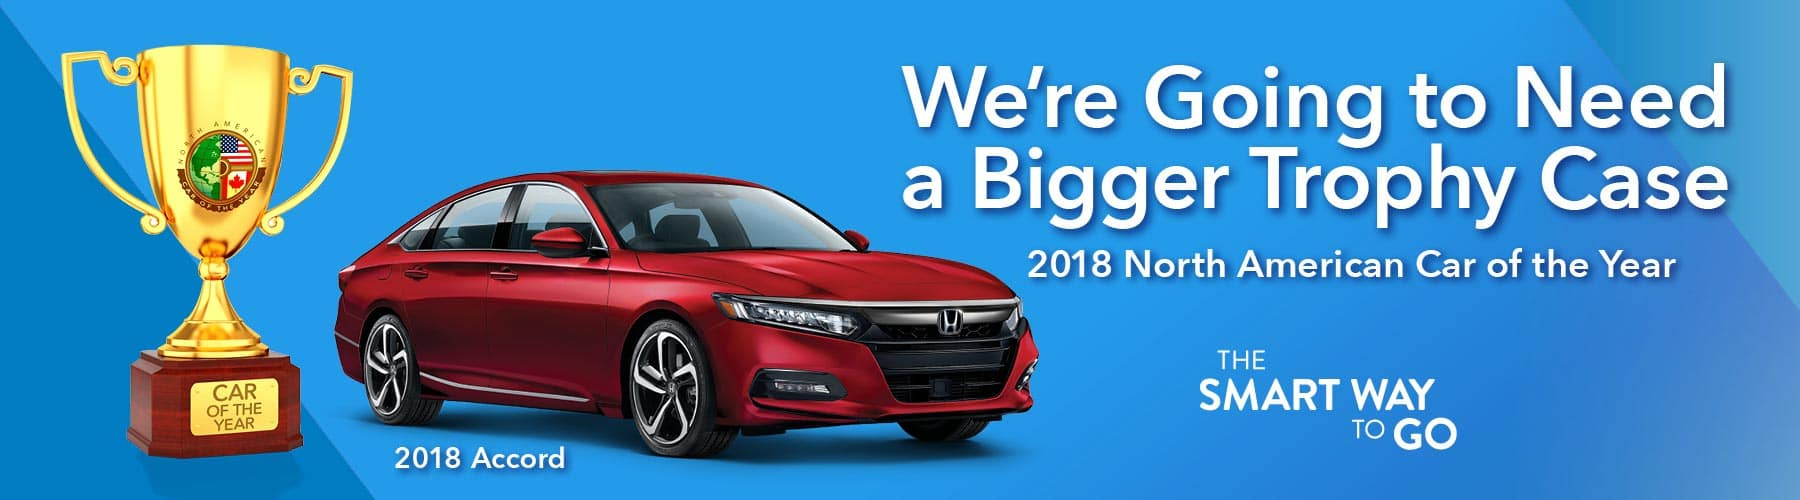 Honda Lease Offers | Special APR Financing | West Michigan Honda